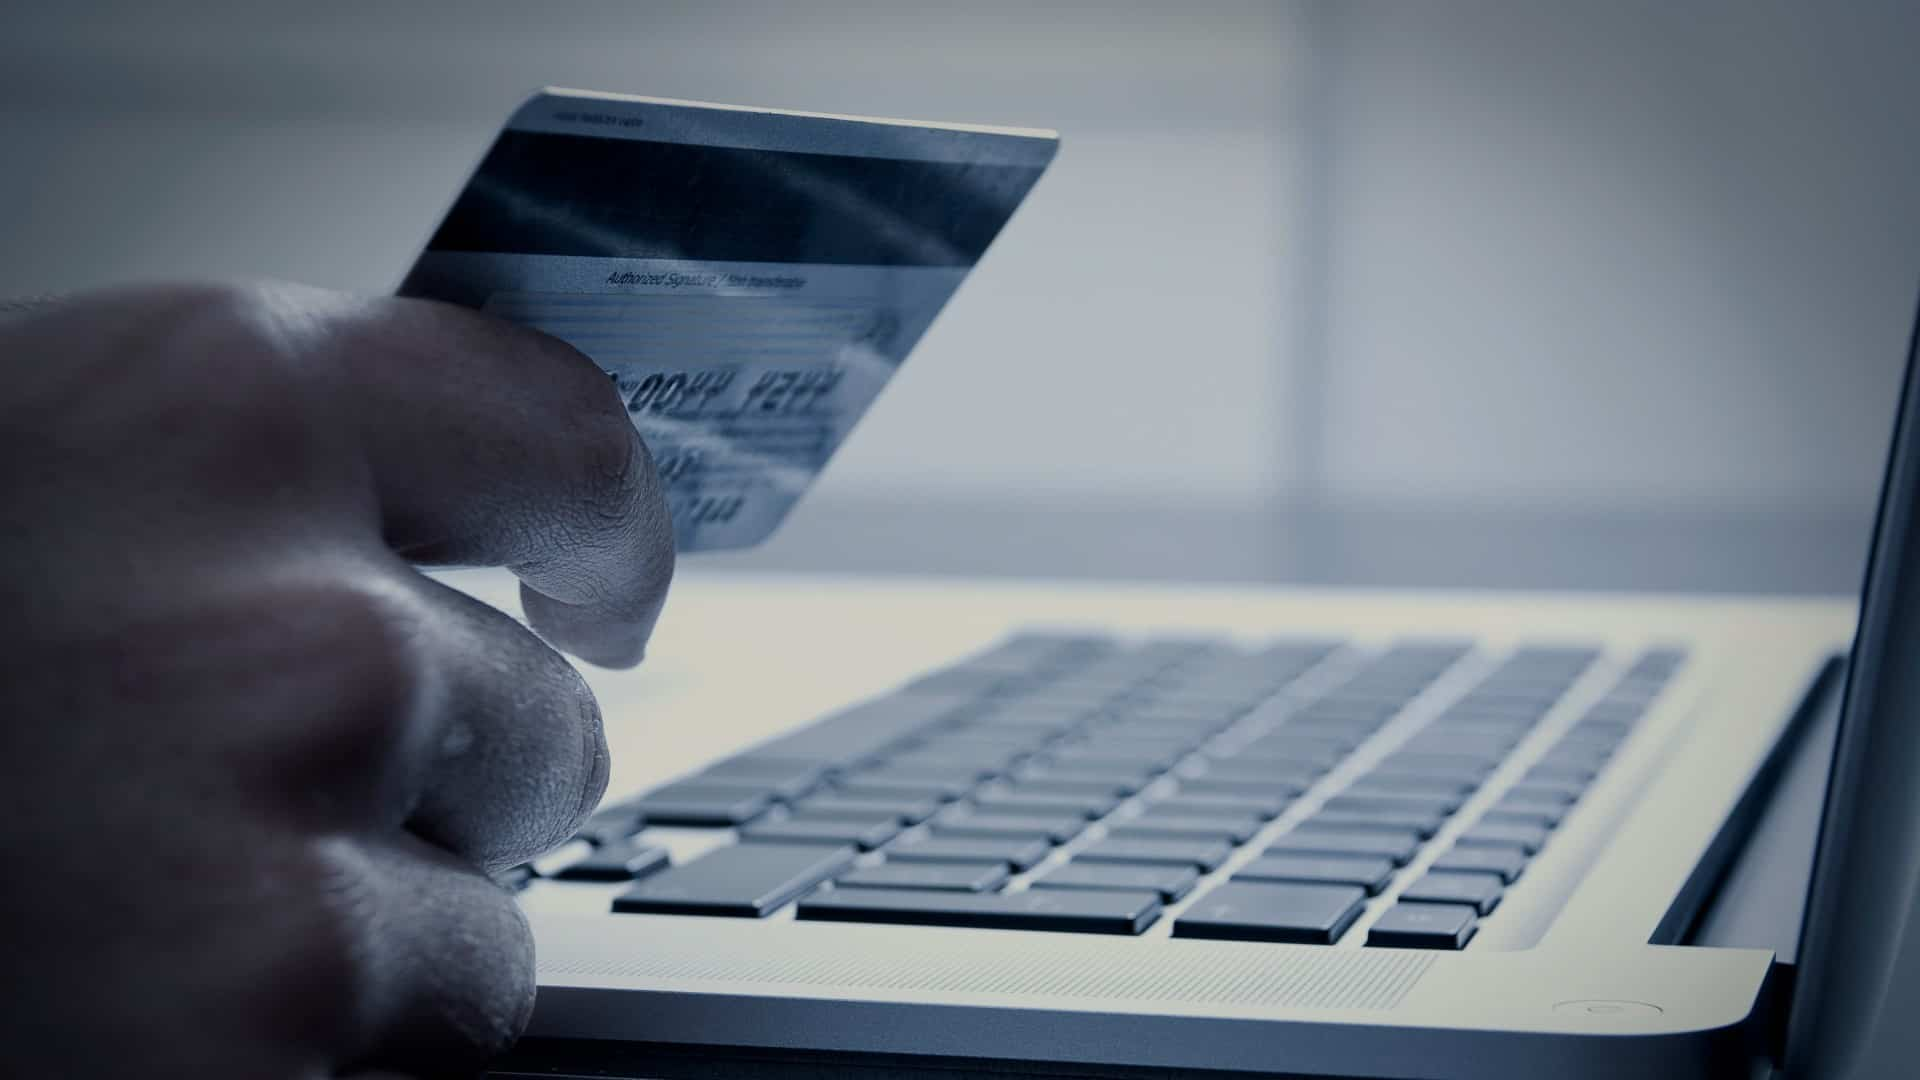 Online Banking Made Secure With VPN